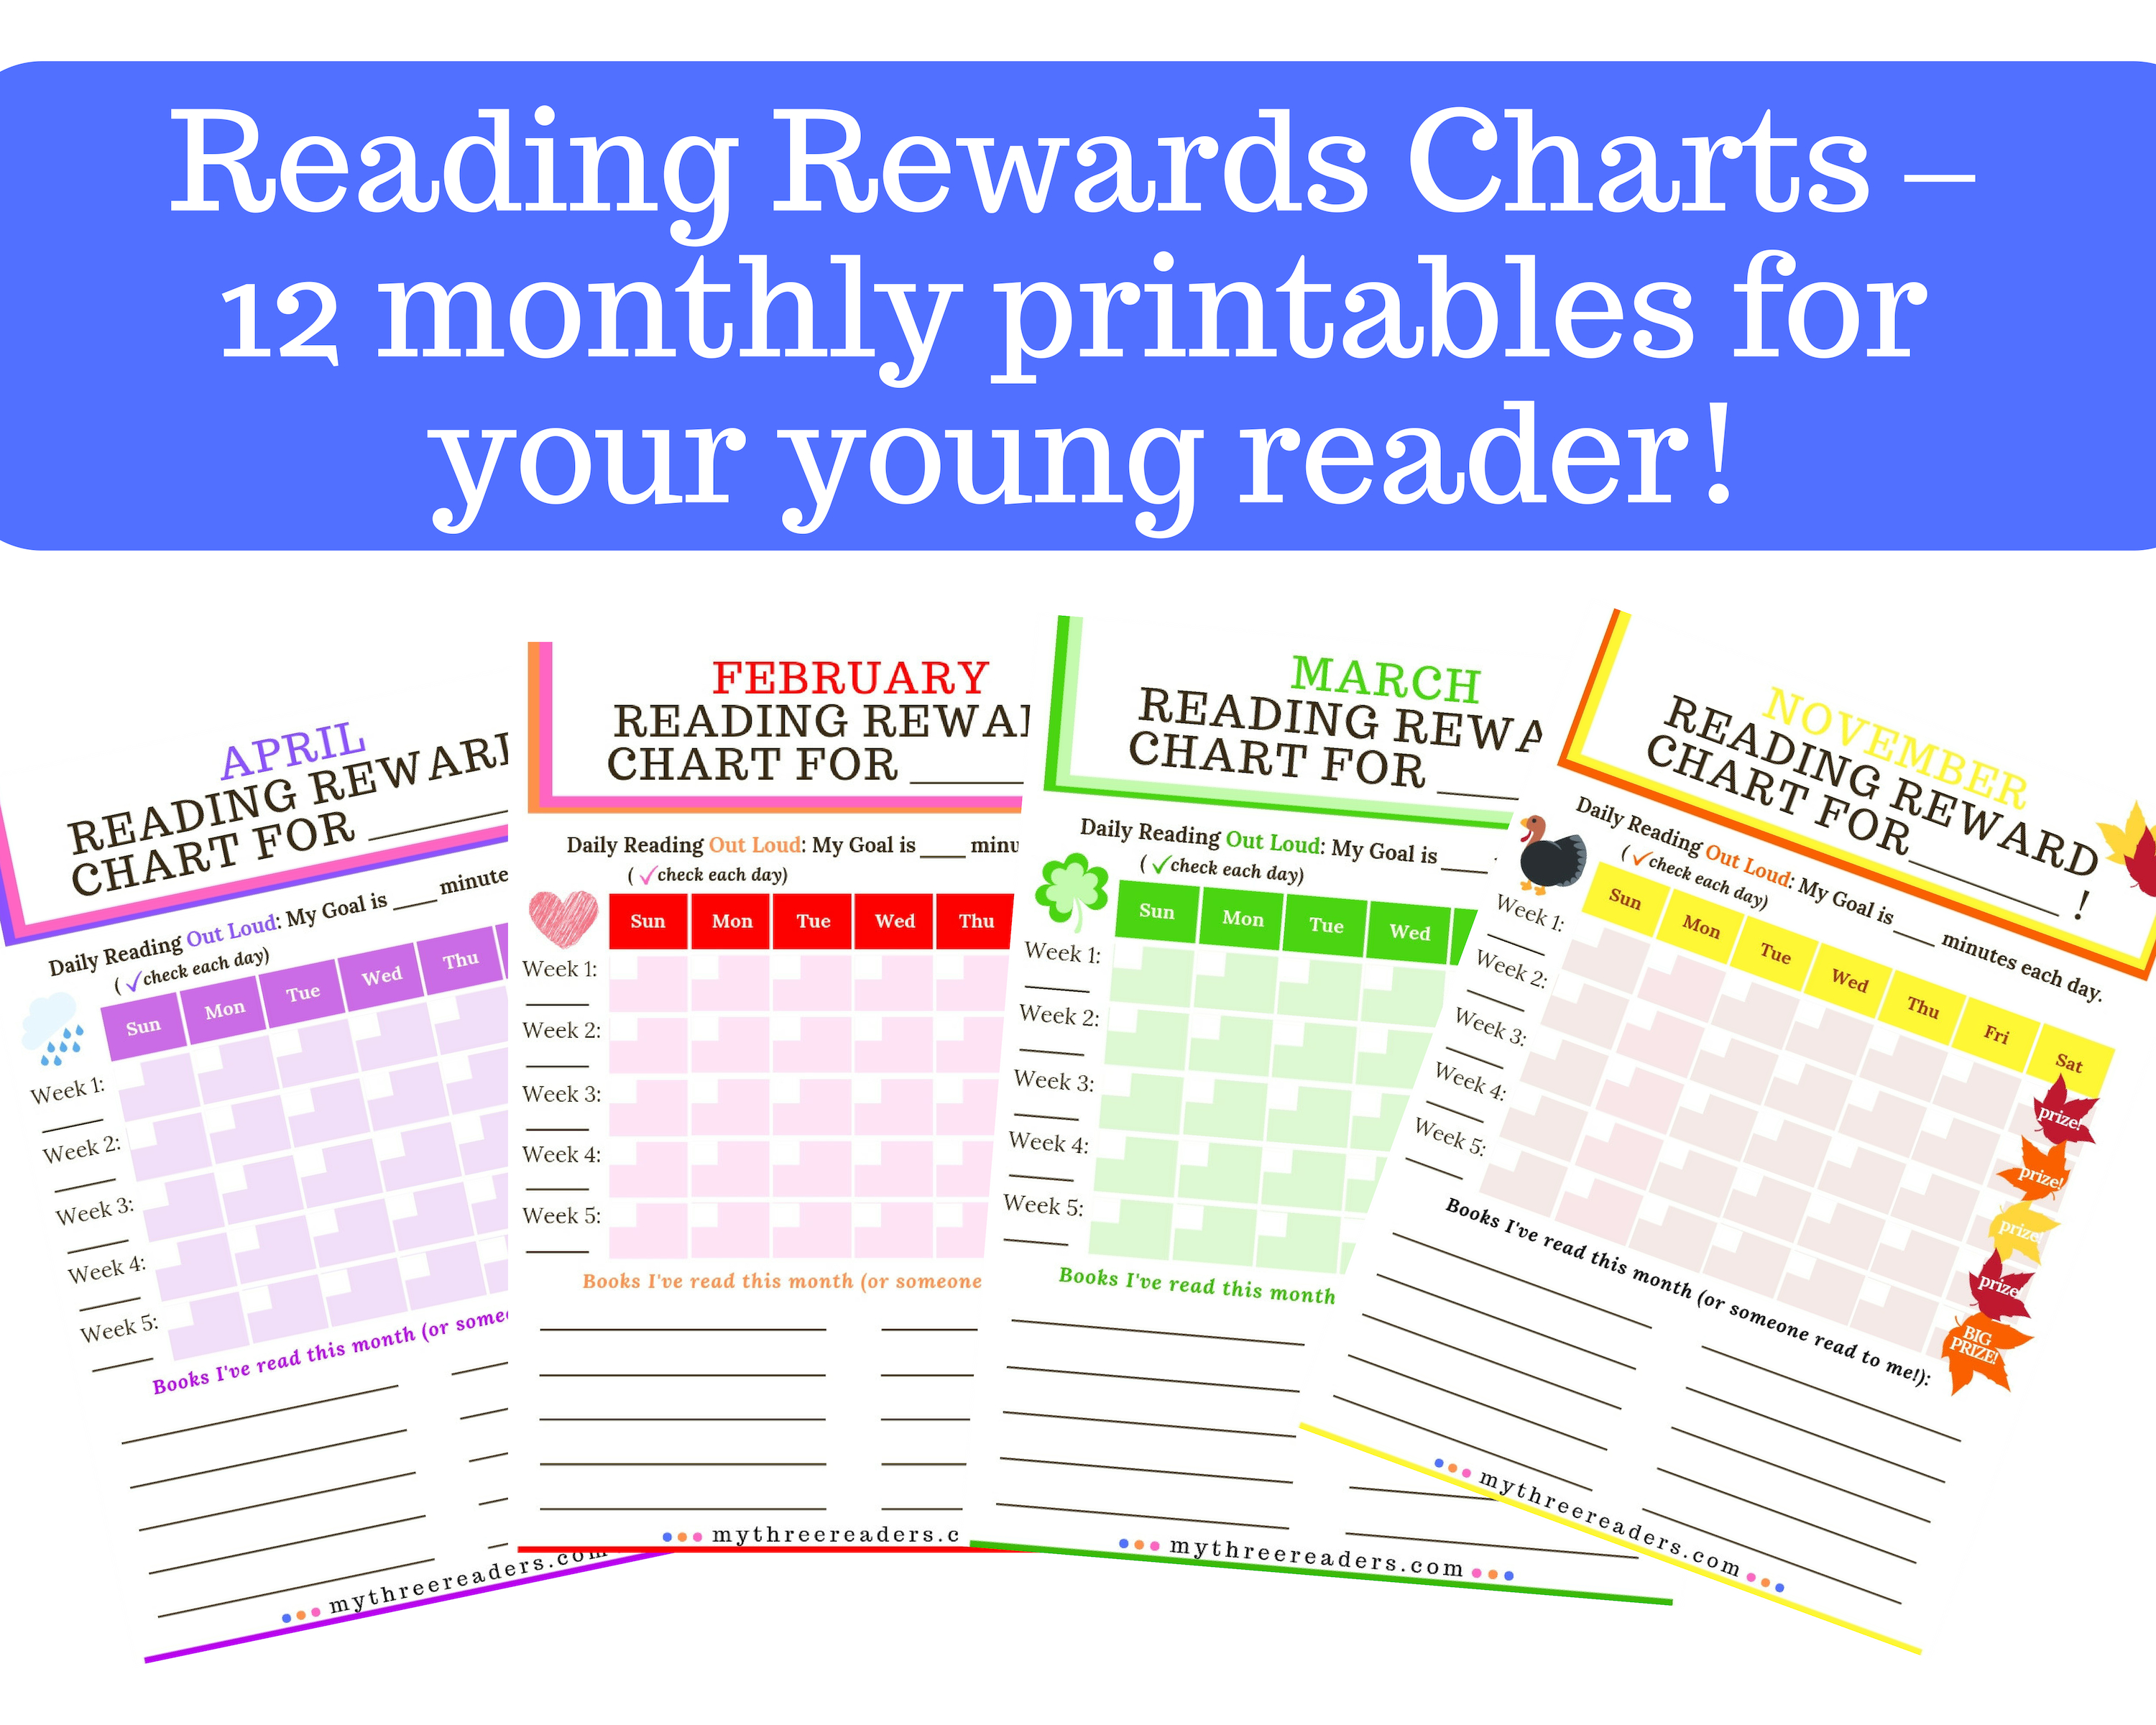 graphic regarding Books I've Read Printable called Reading through Advantage and Incentives Charts - 12 month to month No cost